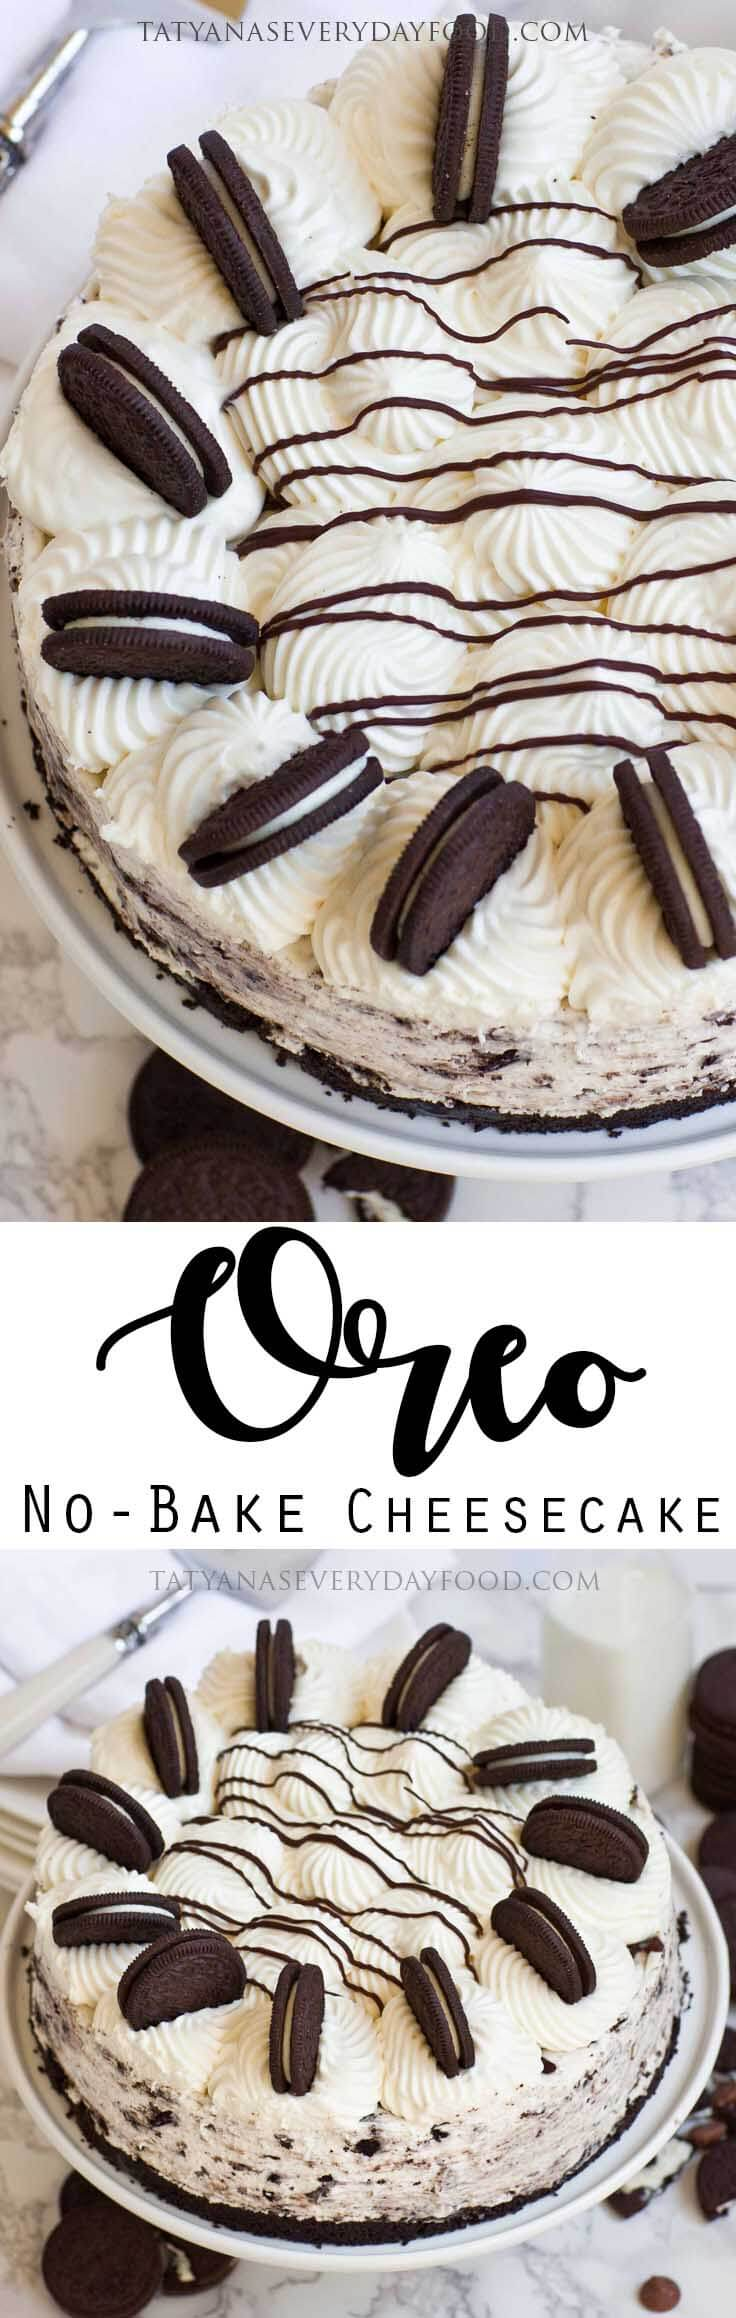 No-Bake Oreo Cheesecake Recipe with video